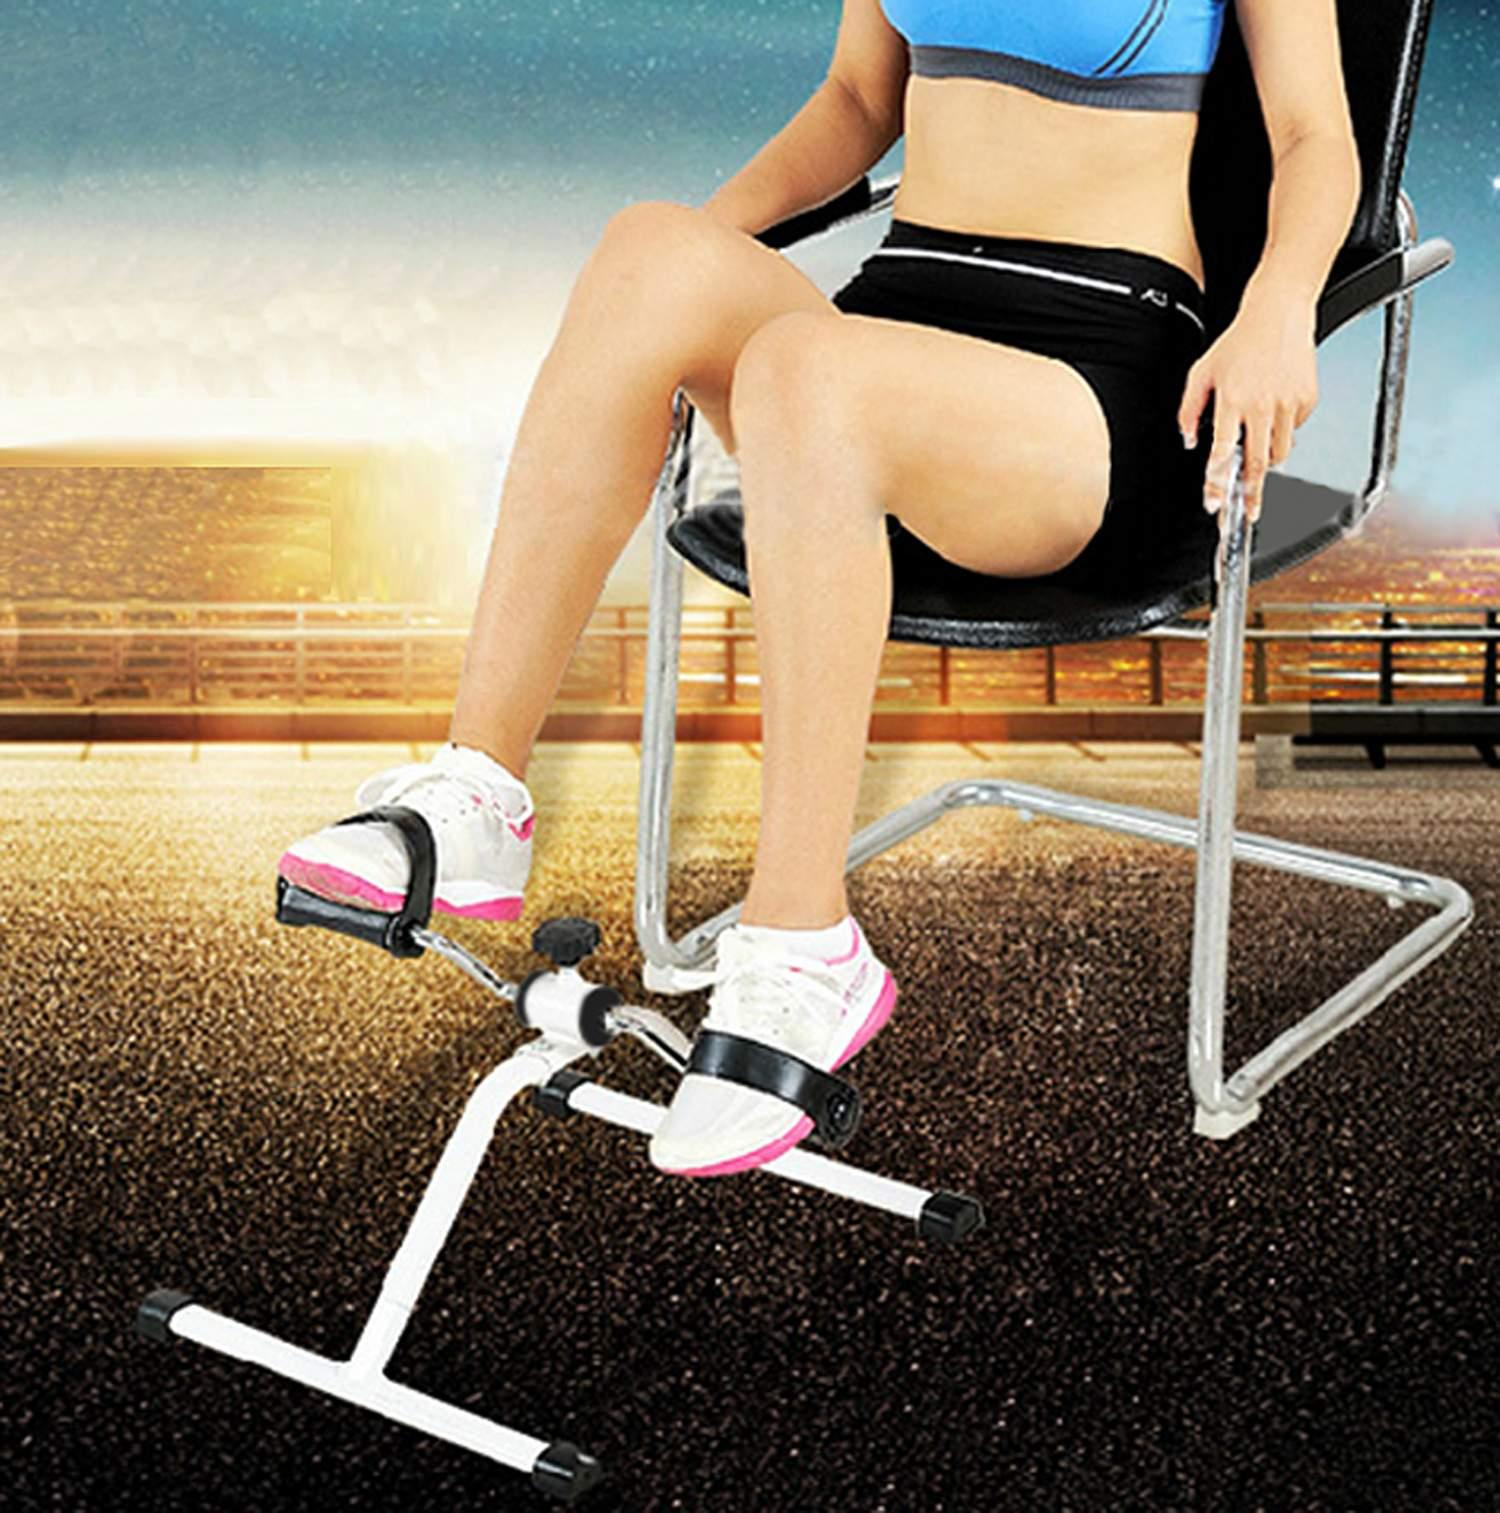 Mini Pedal Exerciser Arm Leg Exercise Machine Physical Therapy Pedal Cycle Exercise Bike SPTE